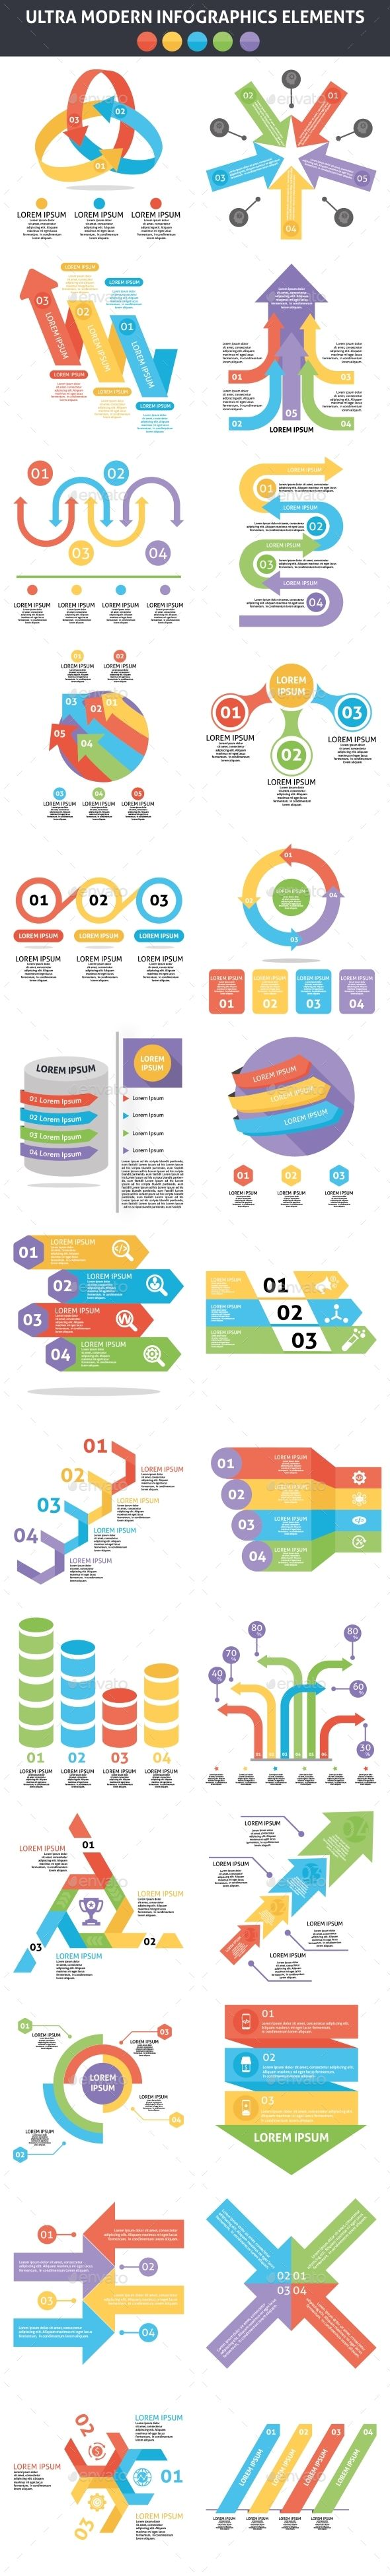 Ultra Modern Infographics Elements Templates PSD, Vector EPS, AI Illustrator